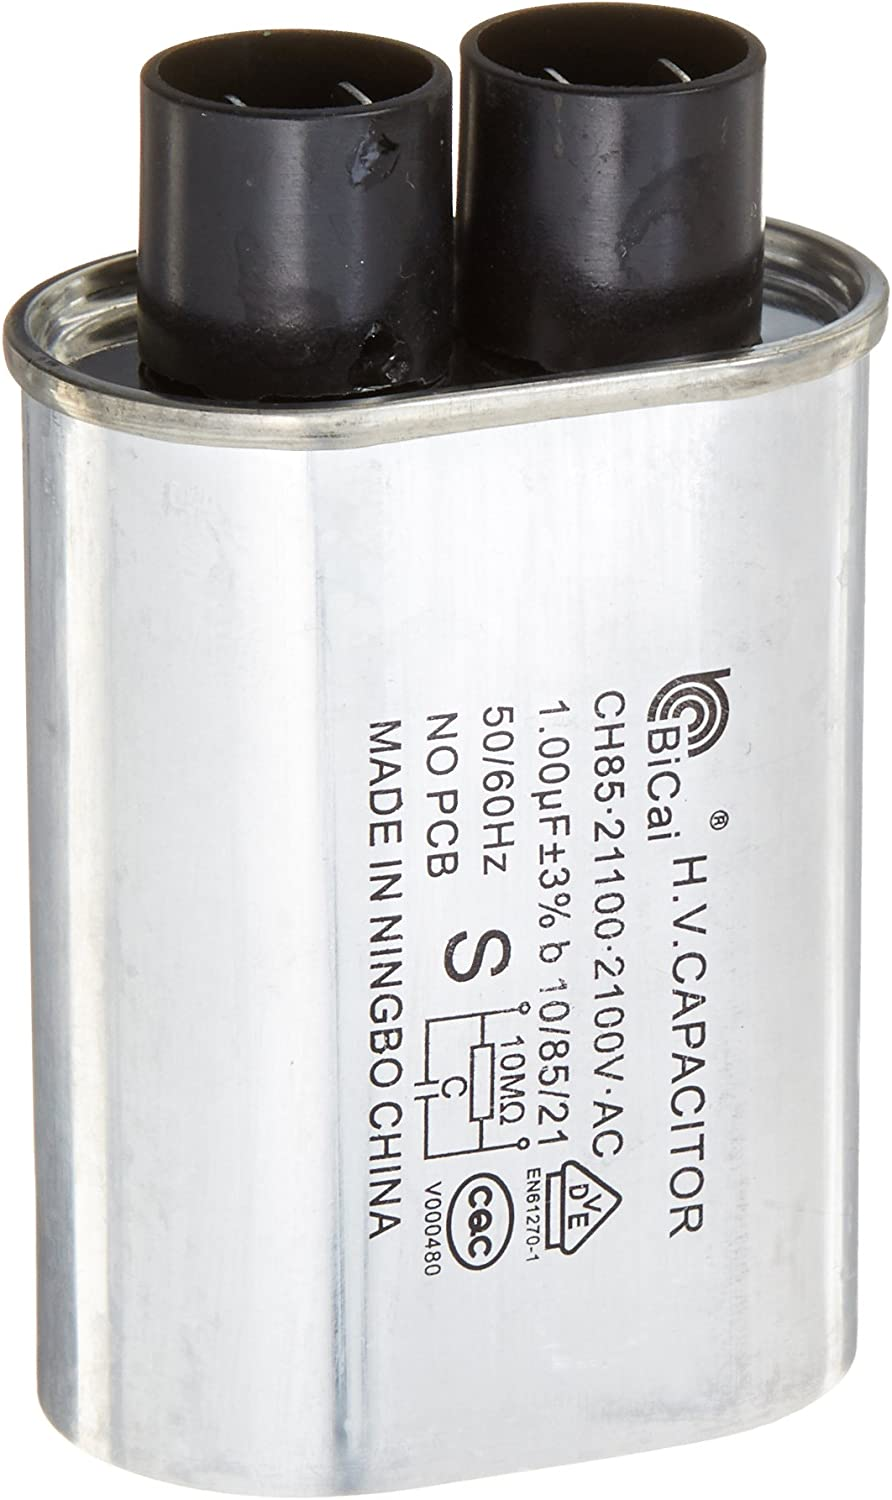 General Electric WB27X10233 High Voltage Capacitor